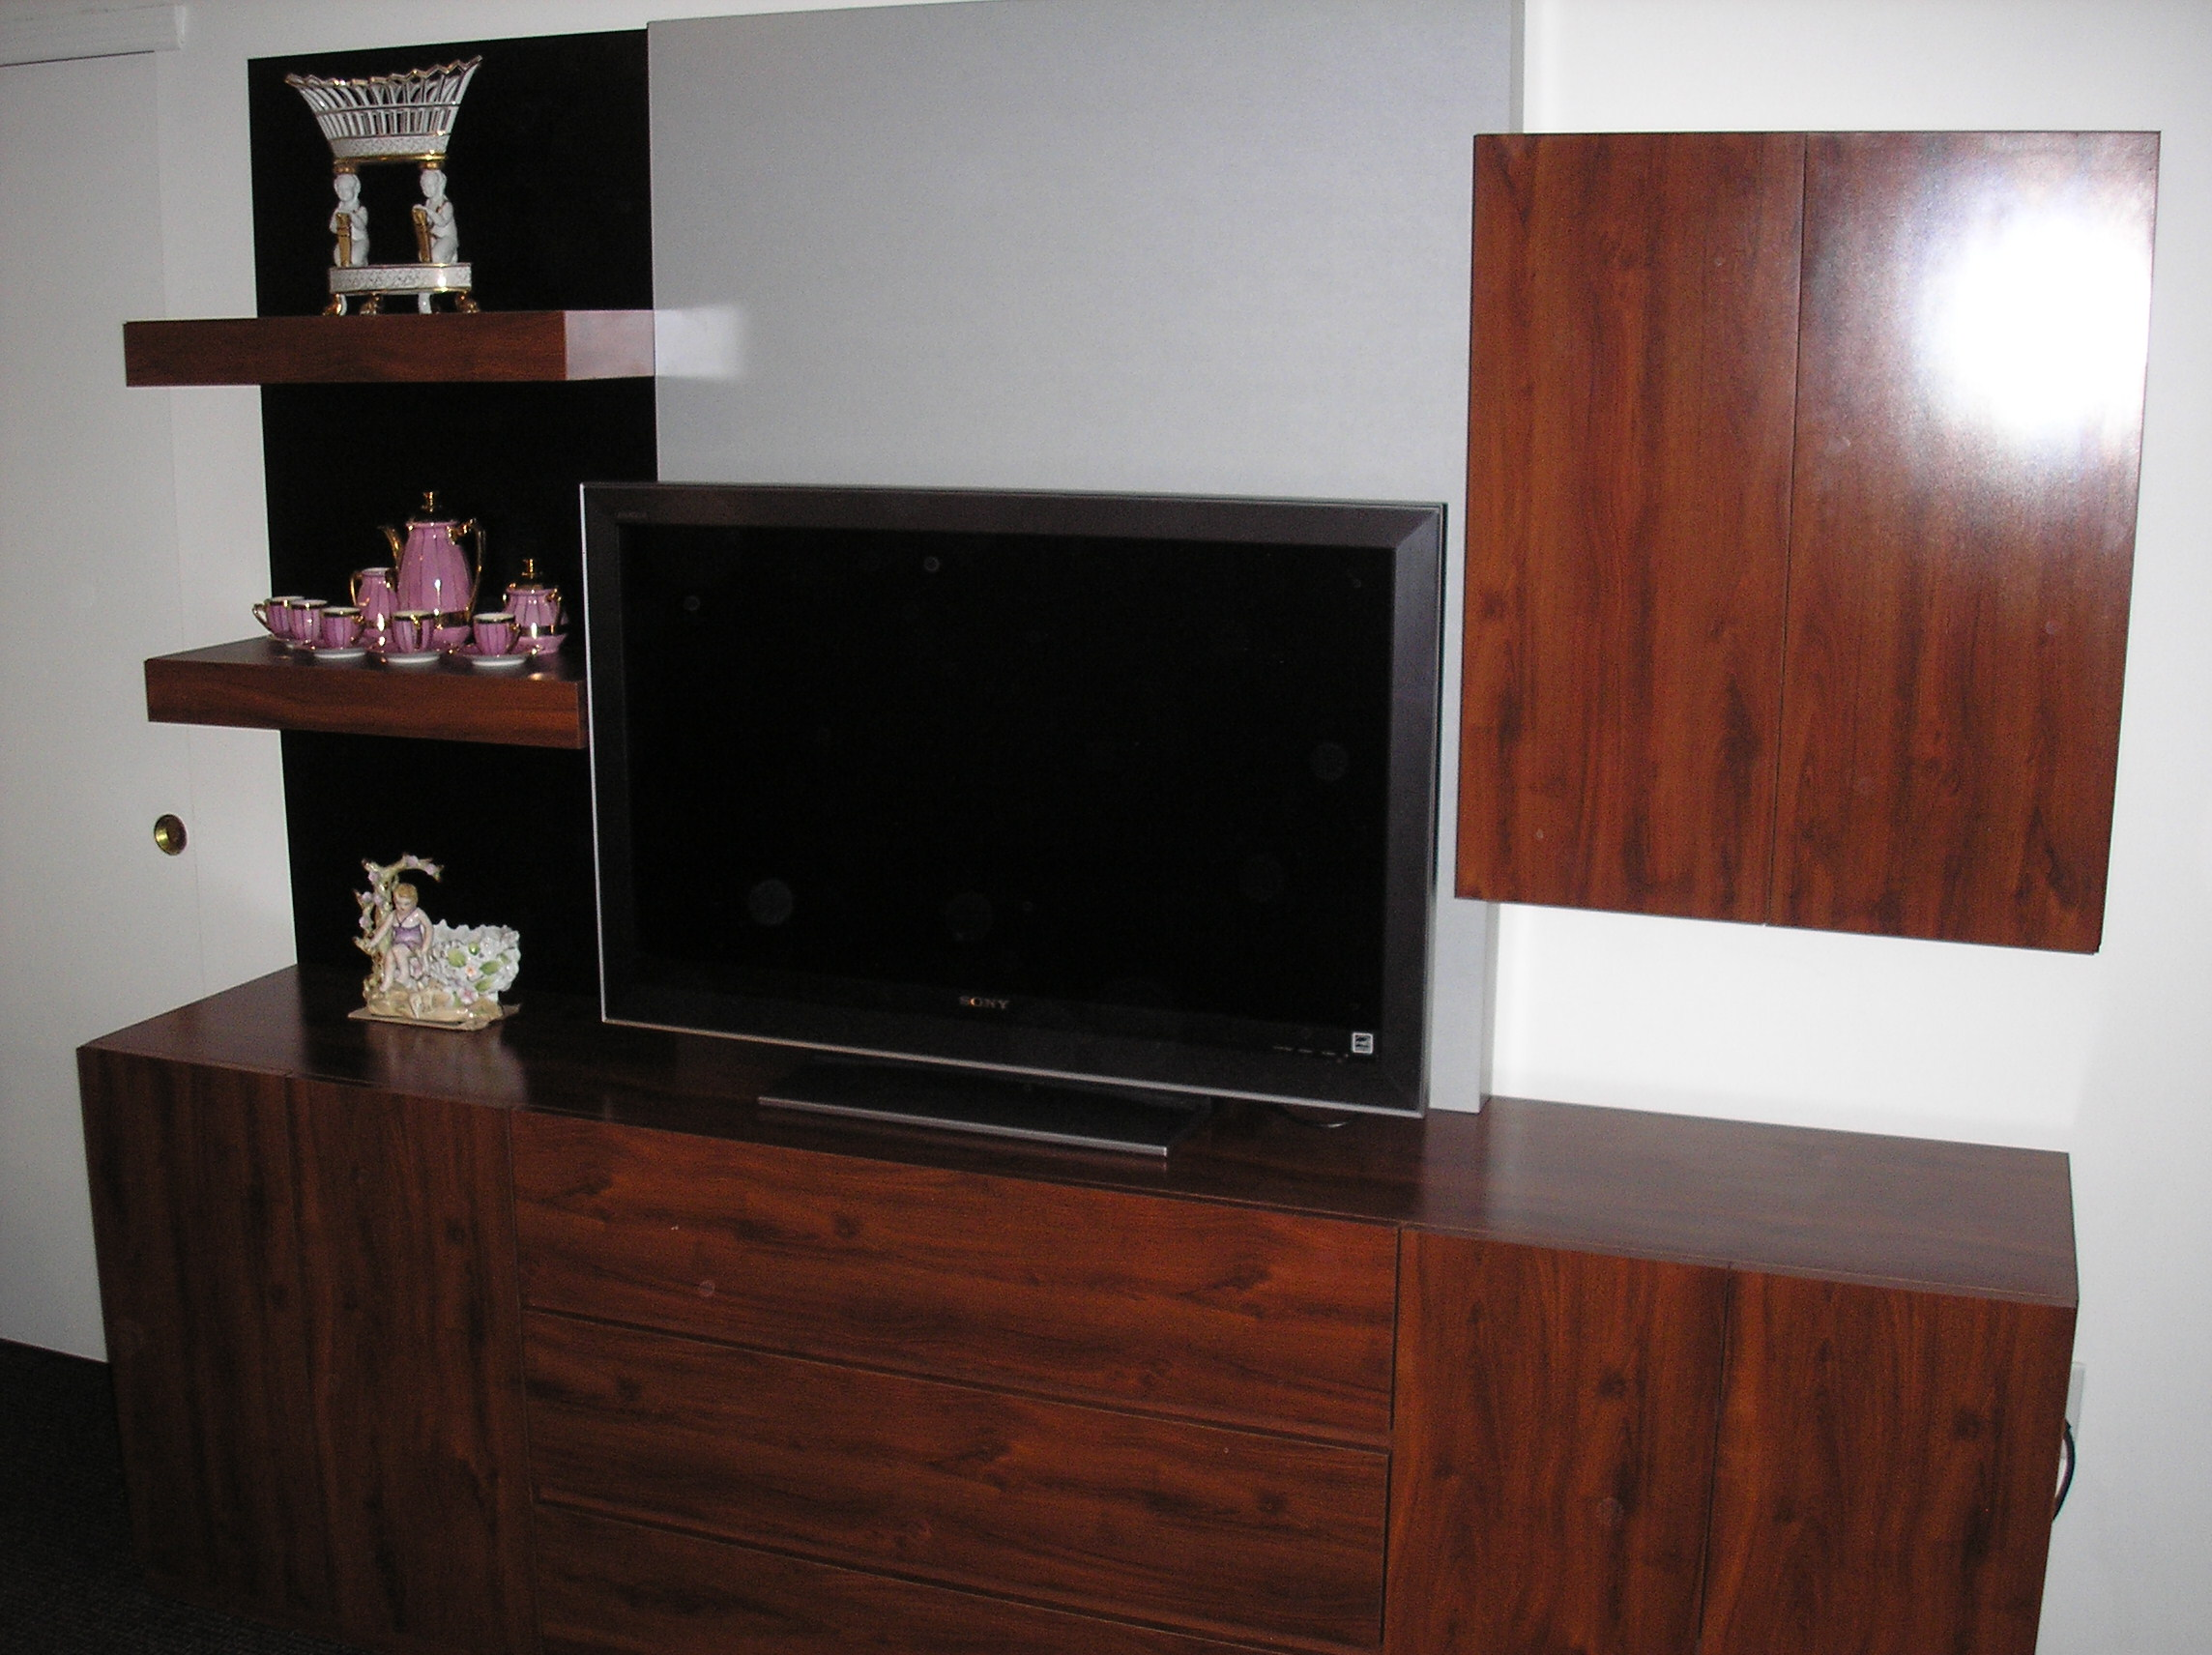 Superieur Mica Furniture Designs, Wilsonart, Formica, Pionite Laminates Which Are  Decorative Surfaces. This Type Of Furniture Lasts A Long Time And Is Used  In ...